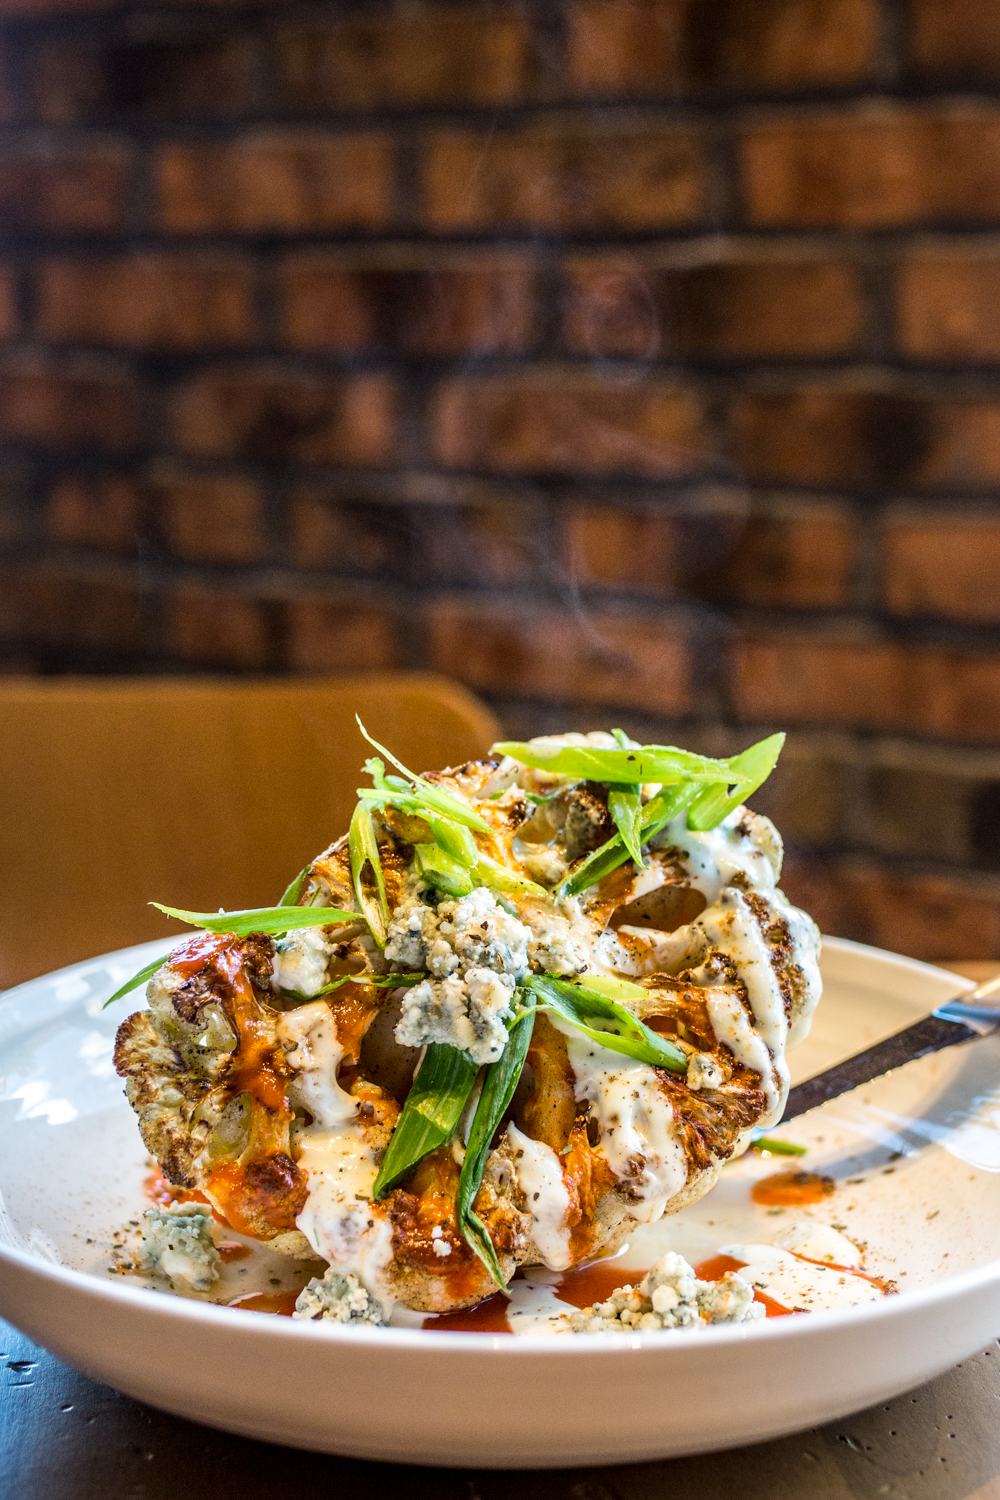 Buffalo Cauliflower: cast iron-seared, al dente roasted cauliflower with a tangy hot sauce, smoked ranch, Danish blue cheese crumbles, and garnished with green onions and house seasonings / Image: Catherine Viox{ }// Published: 10.10.19